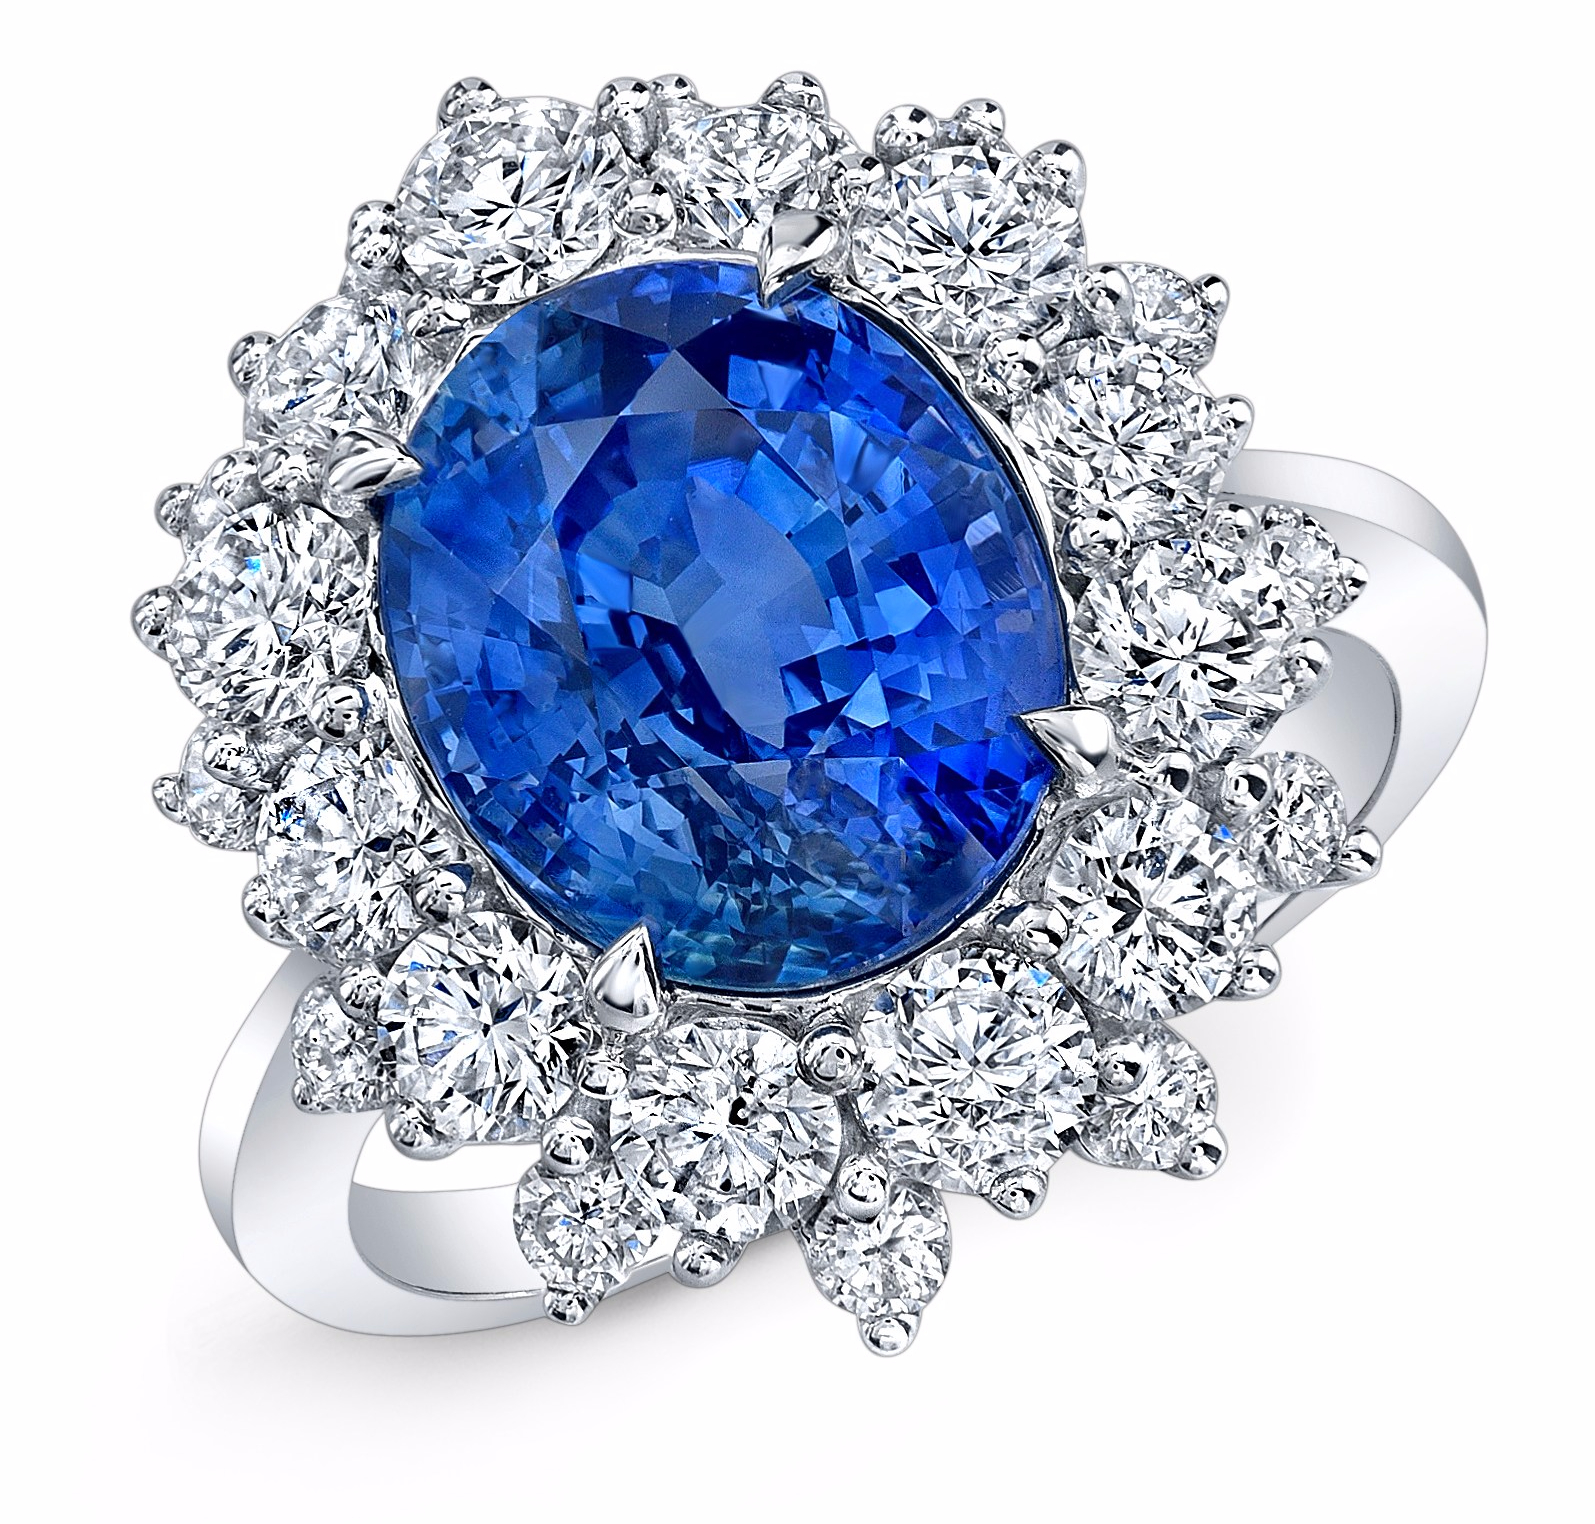 The World of Colored Gems | American Gem Society Blog